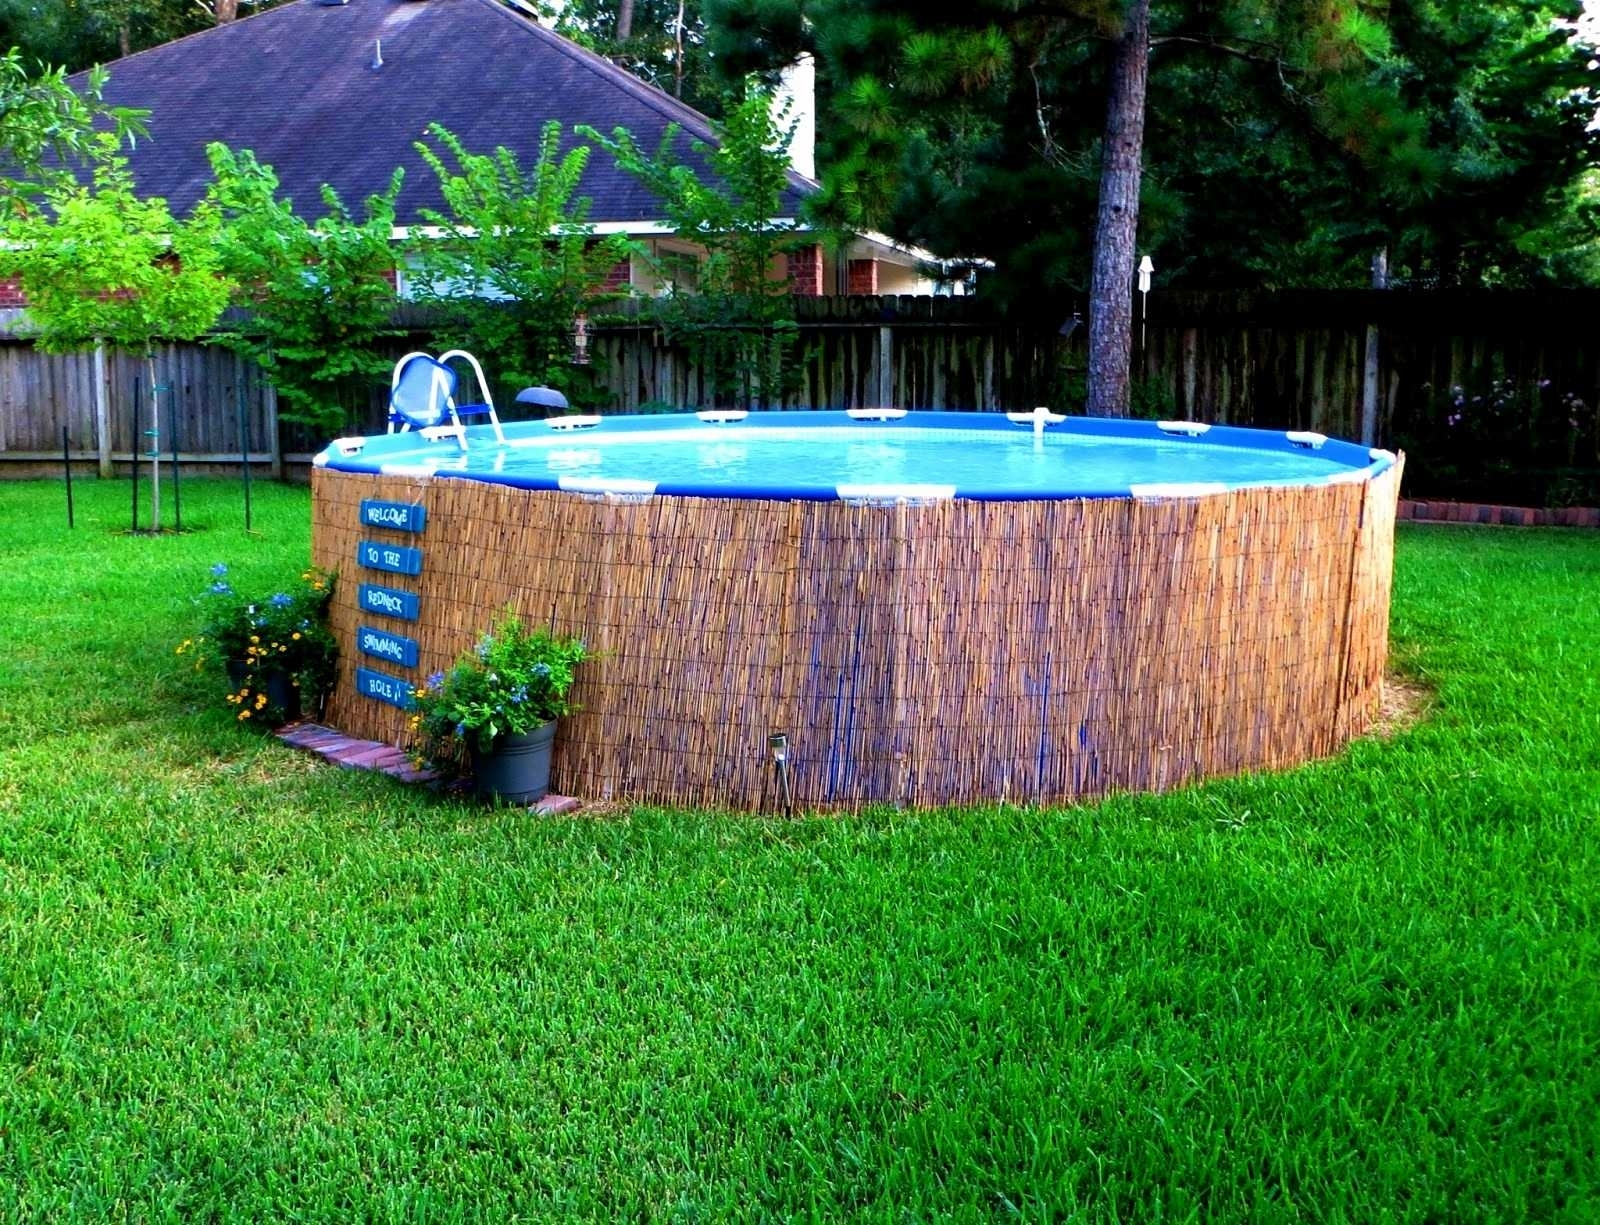 Above Ground Pool Landscaping Images — Randolph Indoor and ... on fiberglass pool ideas, inground pool ideas, christmas pool ideas, bedroom pool ideas, winter pool ideas, small pool ideas, painting pool ideas, courtyard pool ideas, barbecue ideas, florida pool ideas, city pool ideas, pool design ideas, garage pool ideas, backyard garden, backyard resort pools, outdoor pool ideas, cool pool ideas, side yard pool ideas, beach pool ideas,